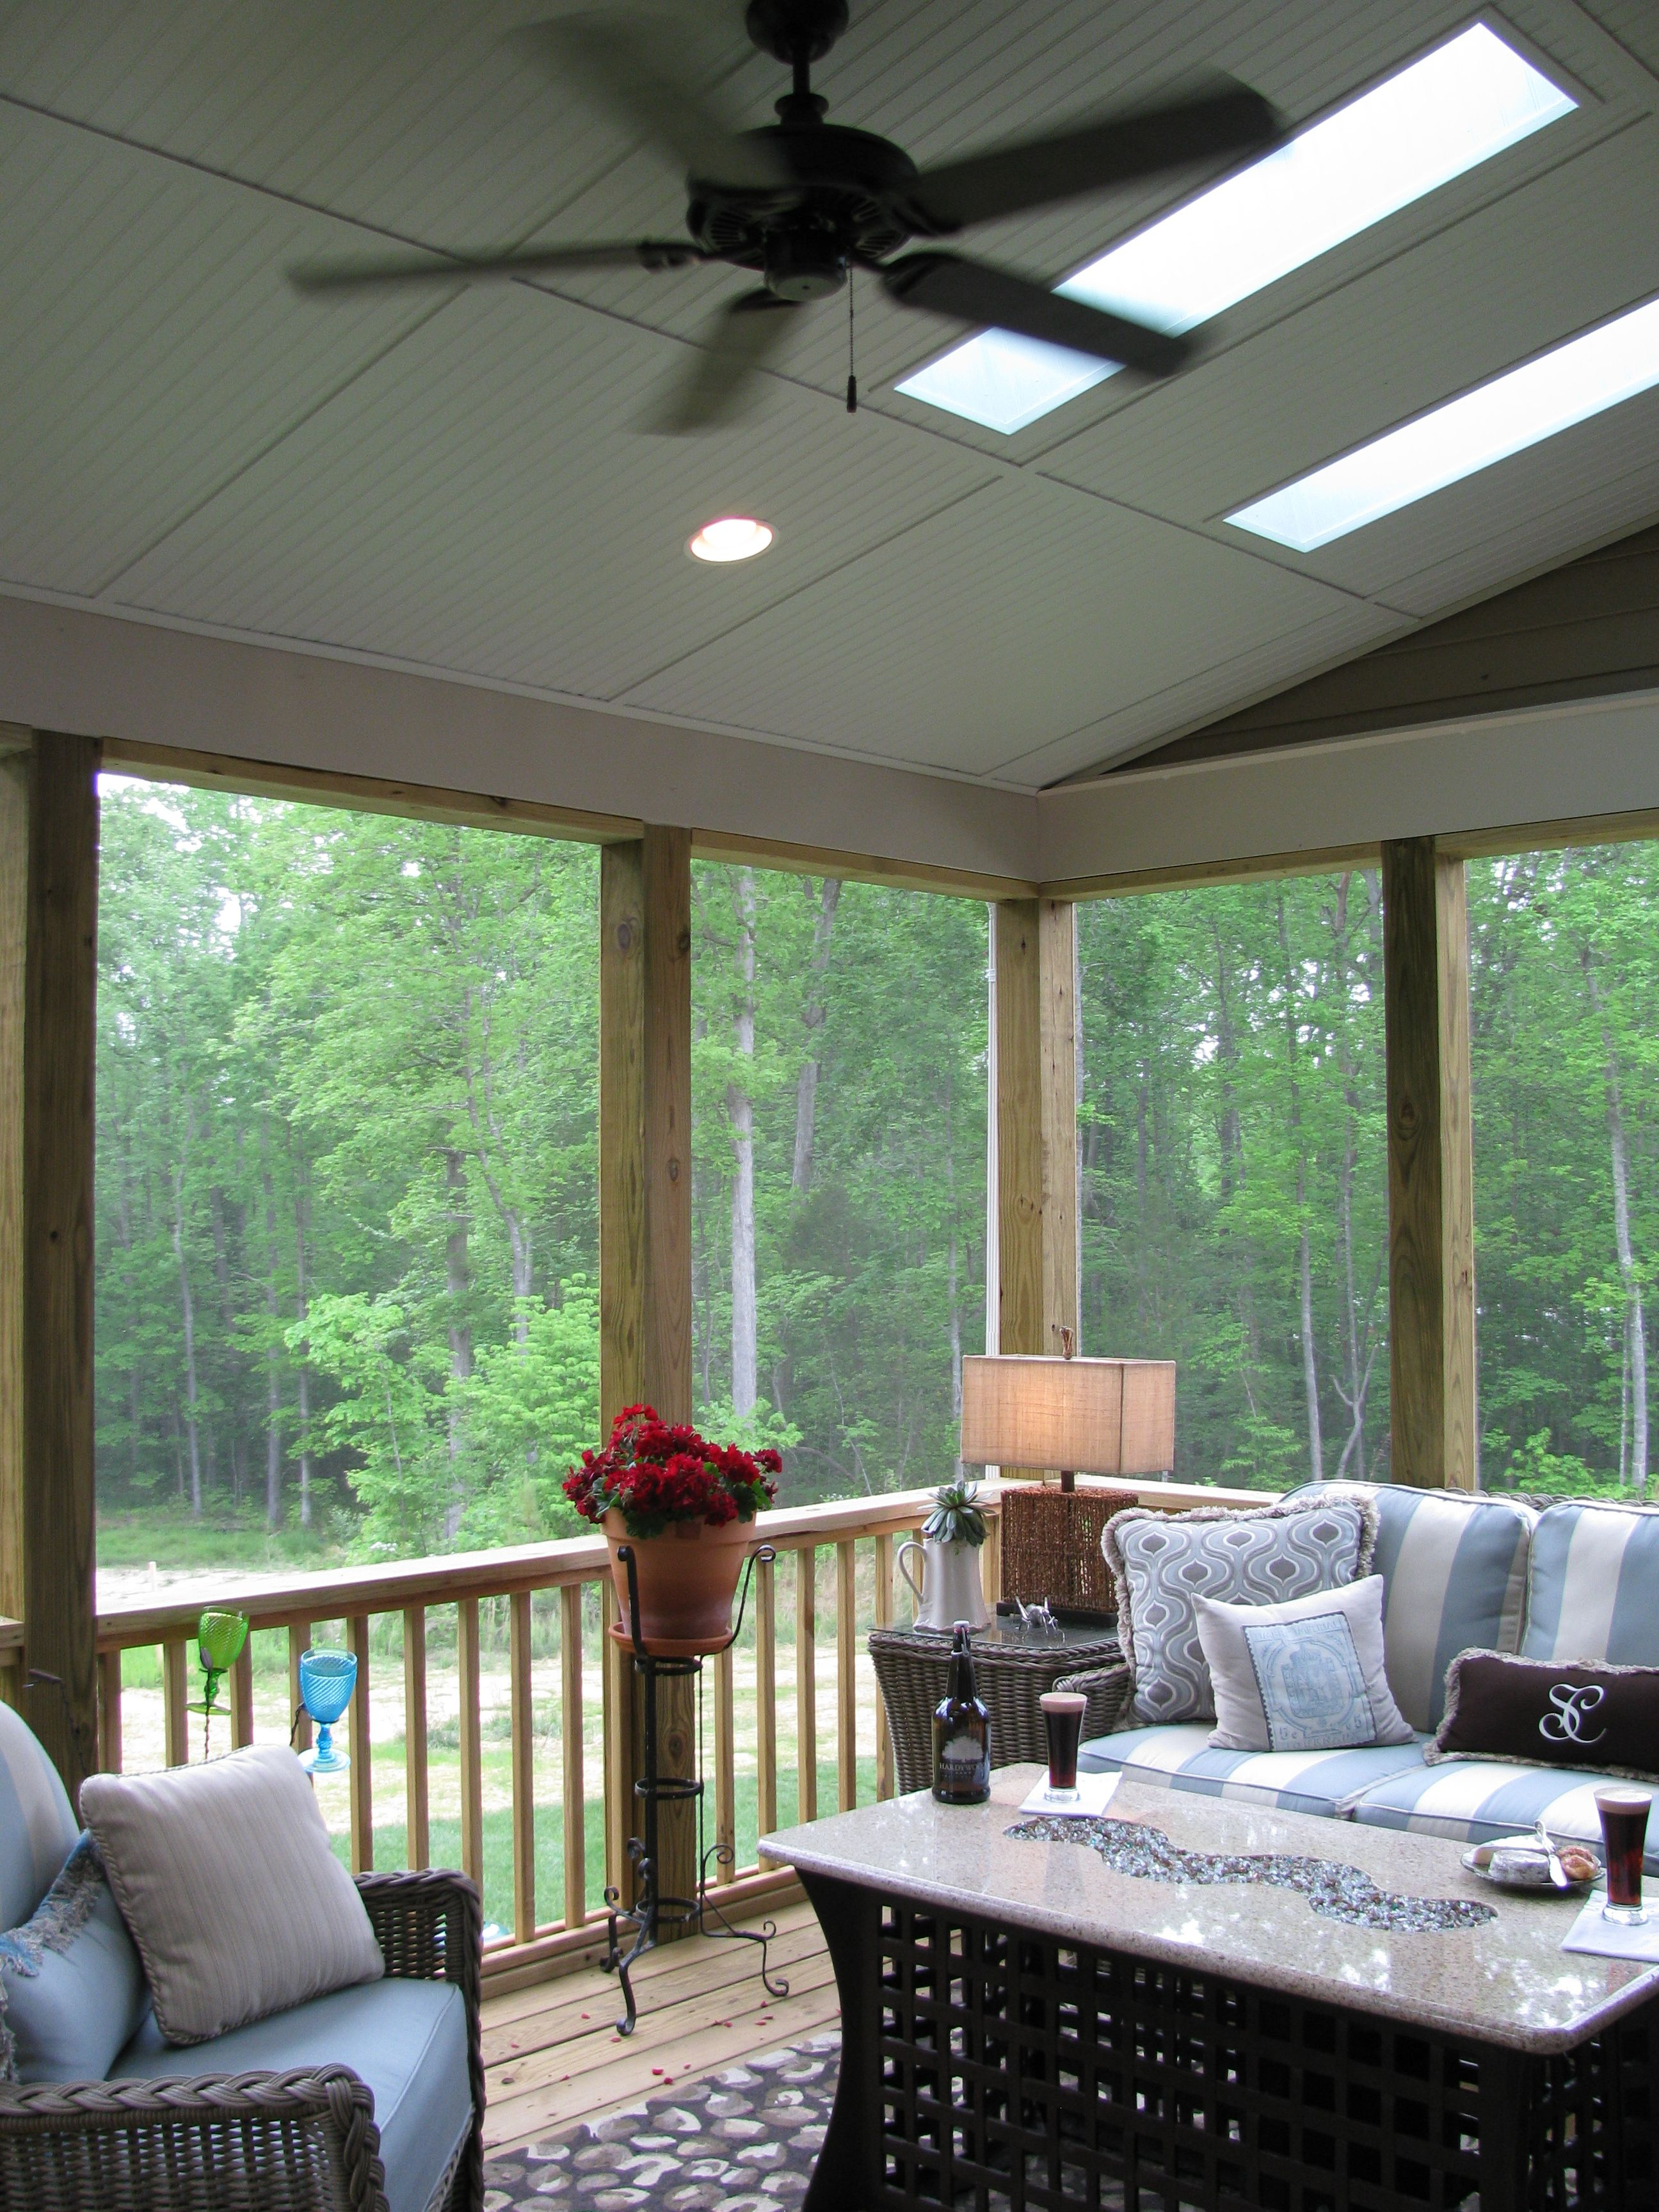 Convert The Deck To A Screened In Covered Porch With